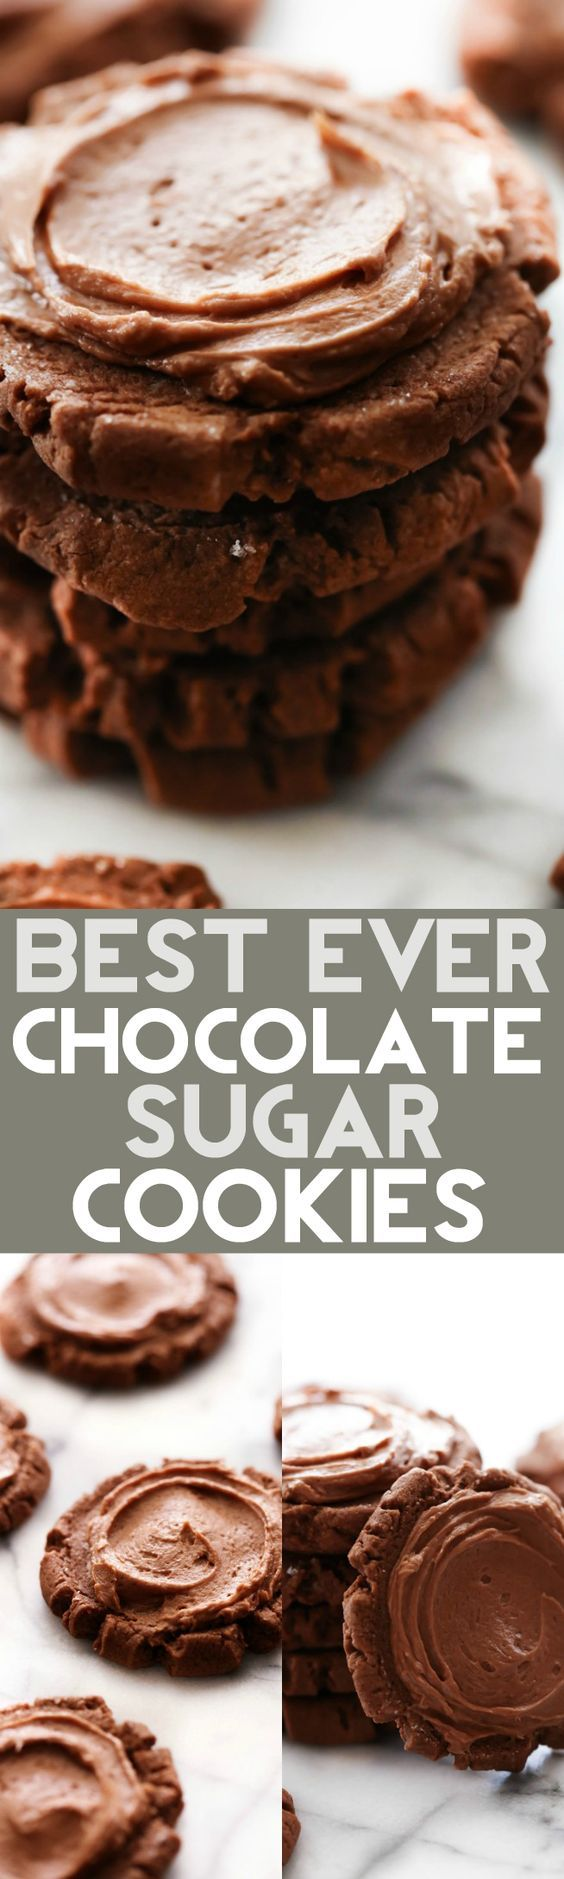 """These Chocolate Sugar Cookies are truly THE BEST EVER! They are inspired by my favorite """"Dirtball Cookie"""" at a drink stop called Swig."""